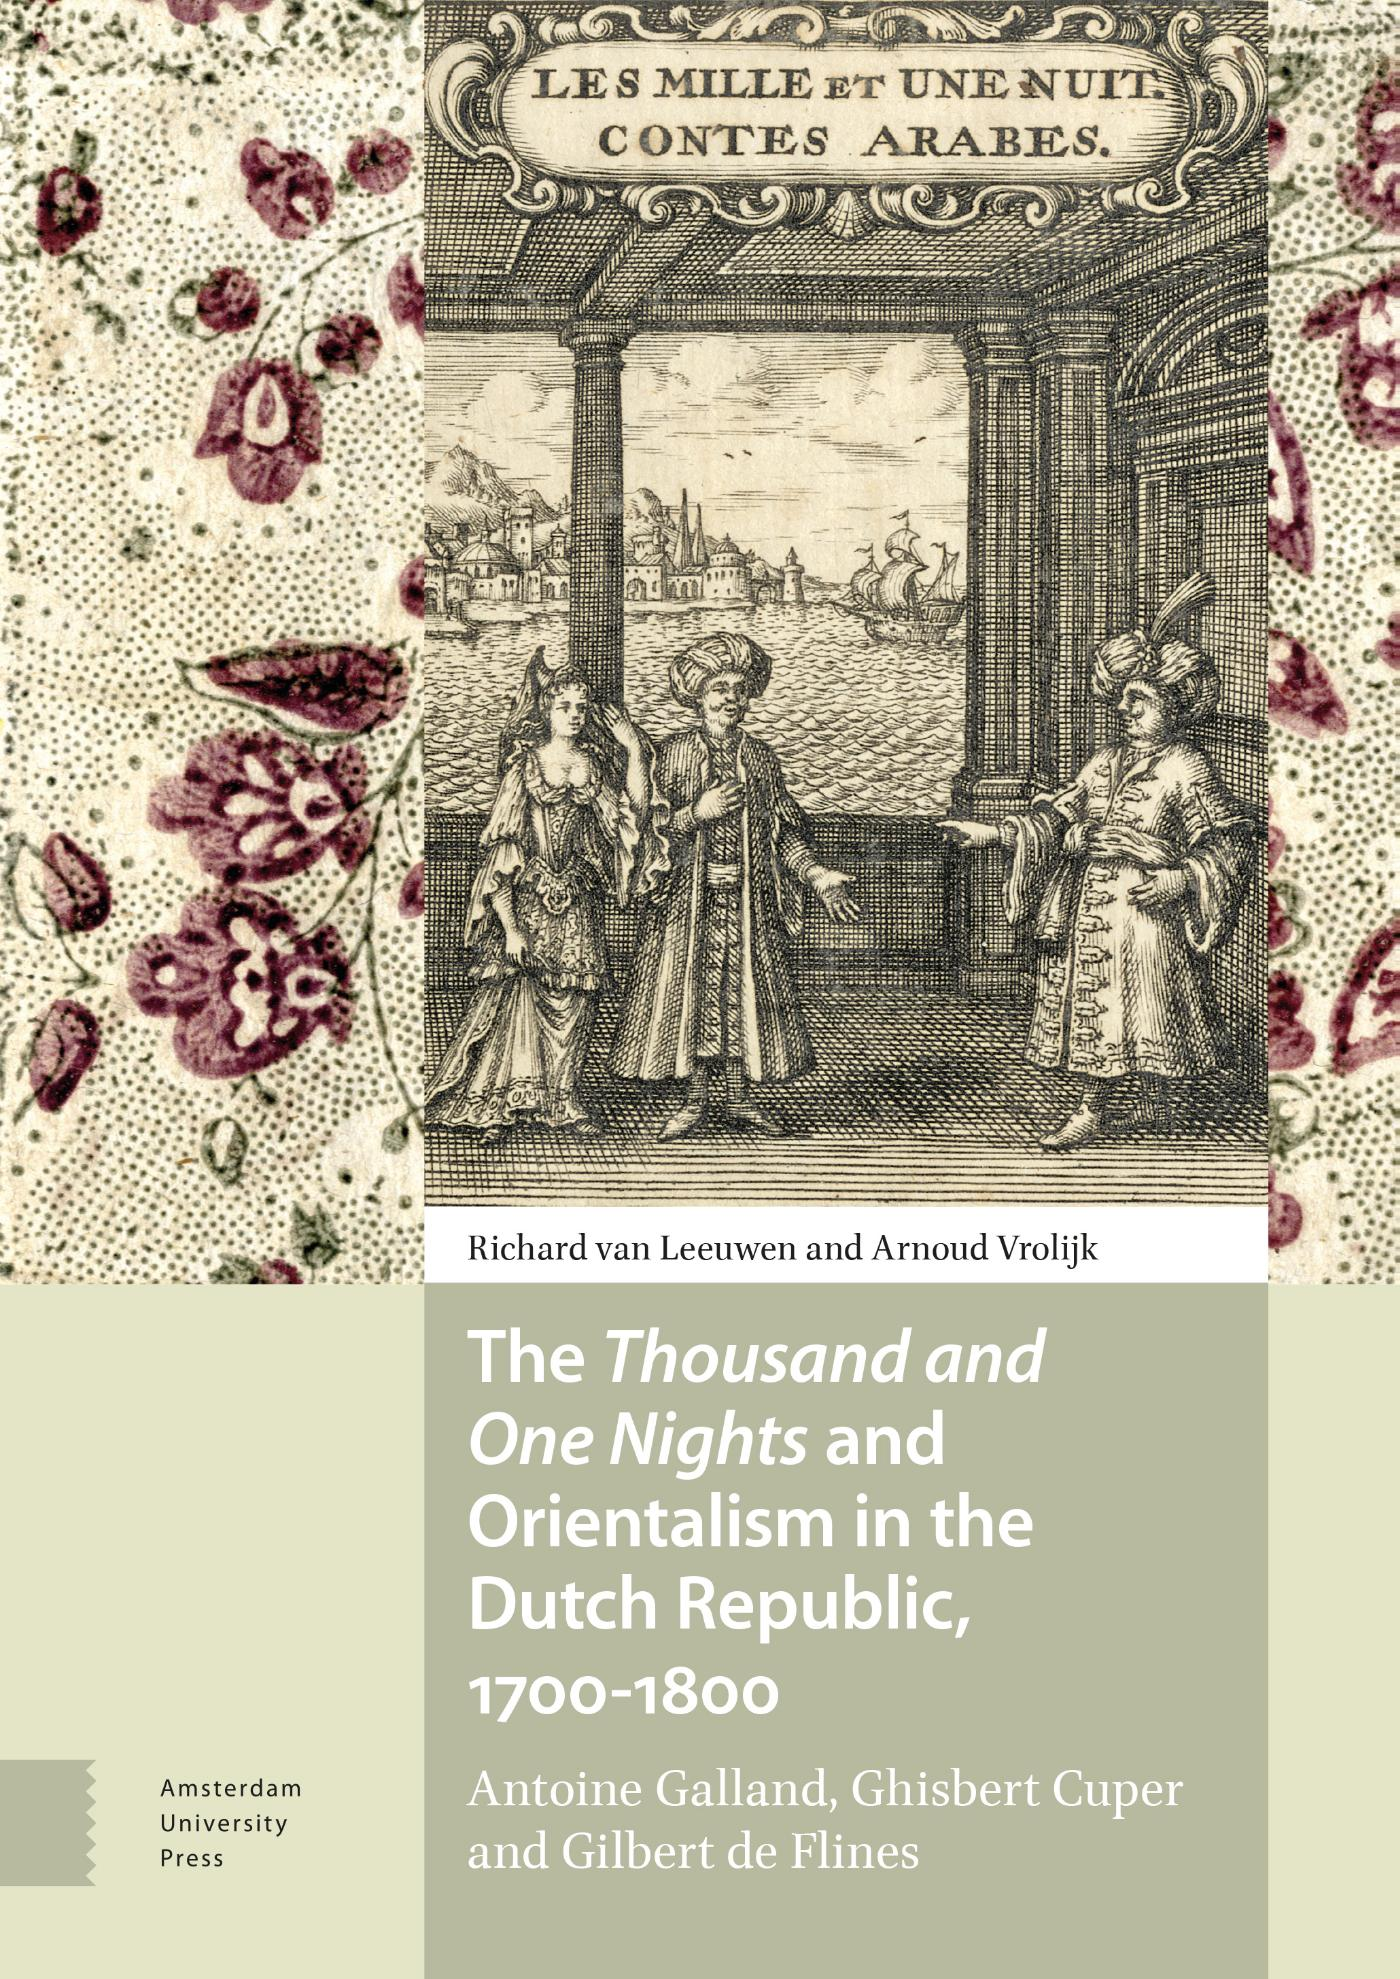 The Thousand and One Nights and Orientalism in the Dutch Republic, 1700-1800